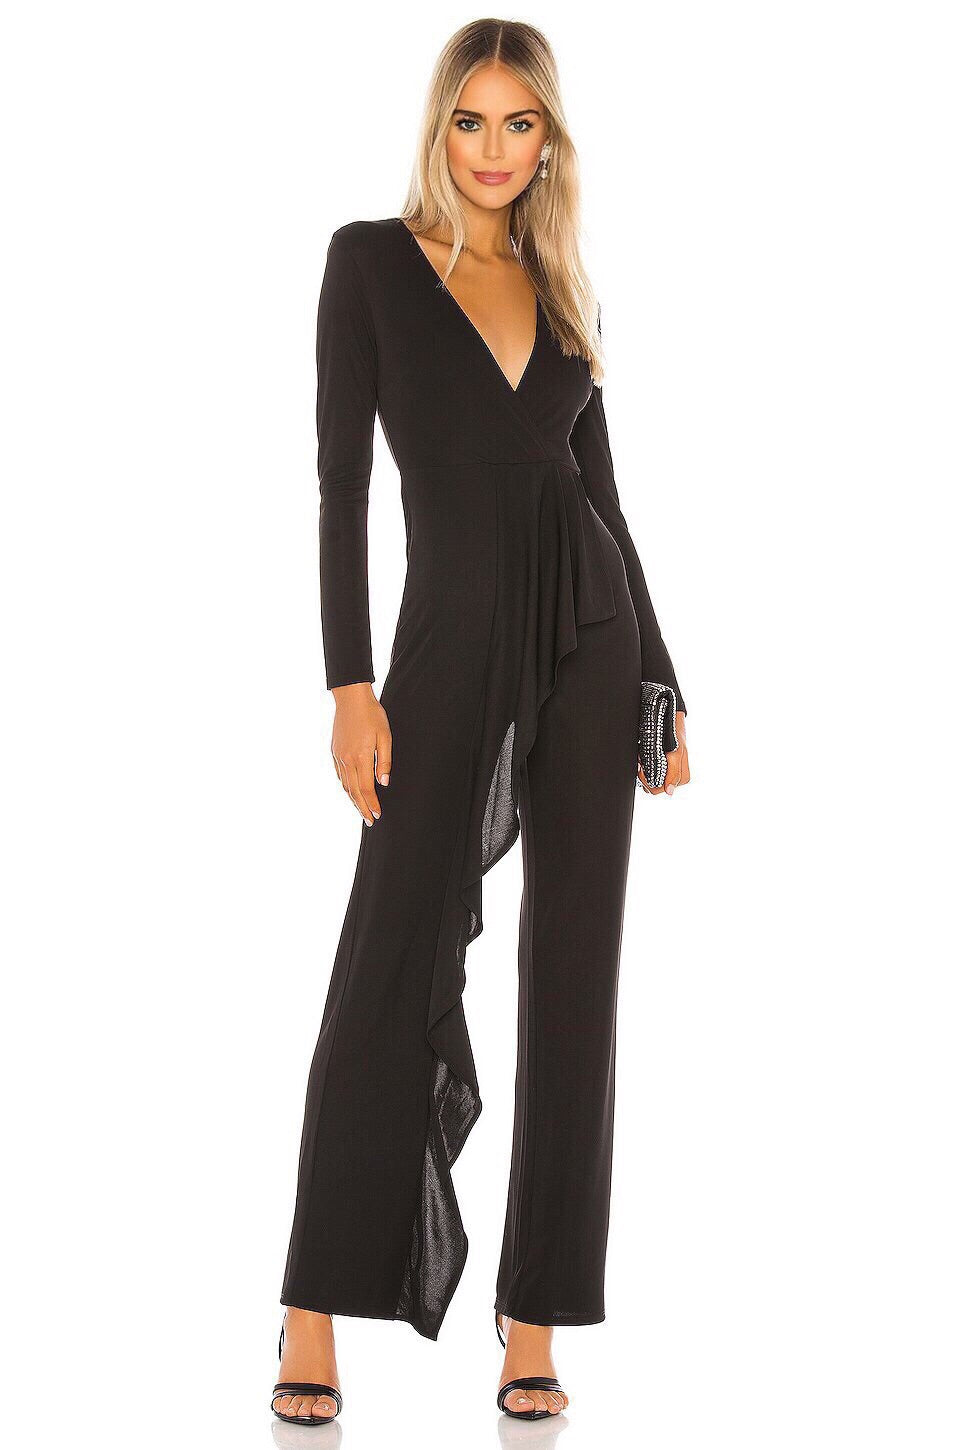 Marisol Jumpsuit in Black